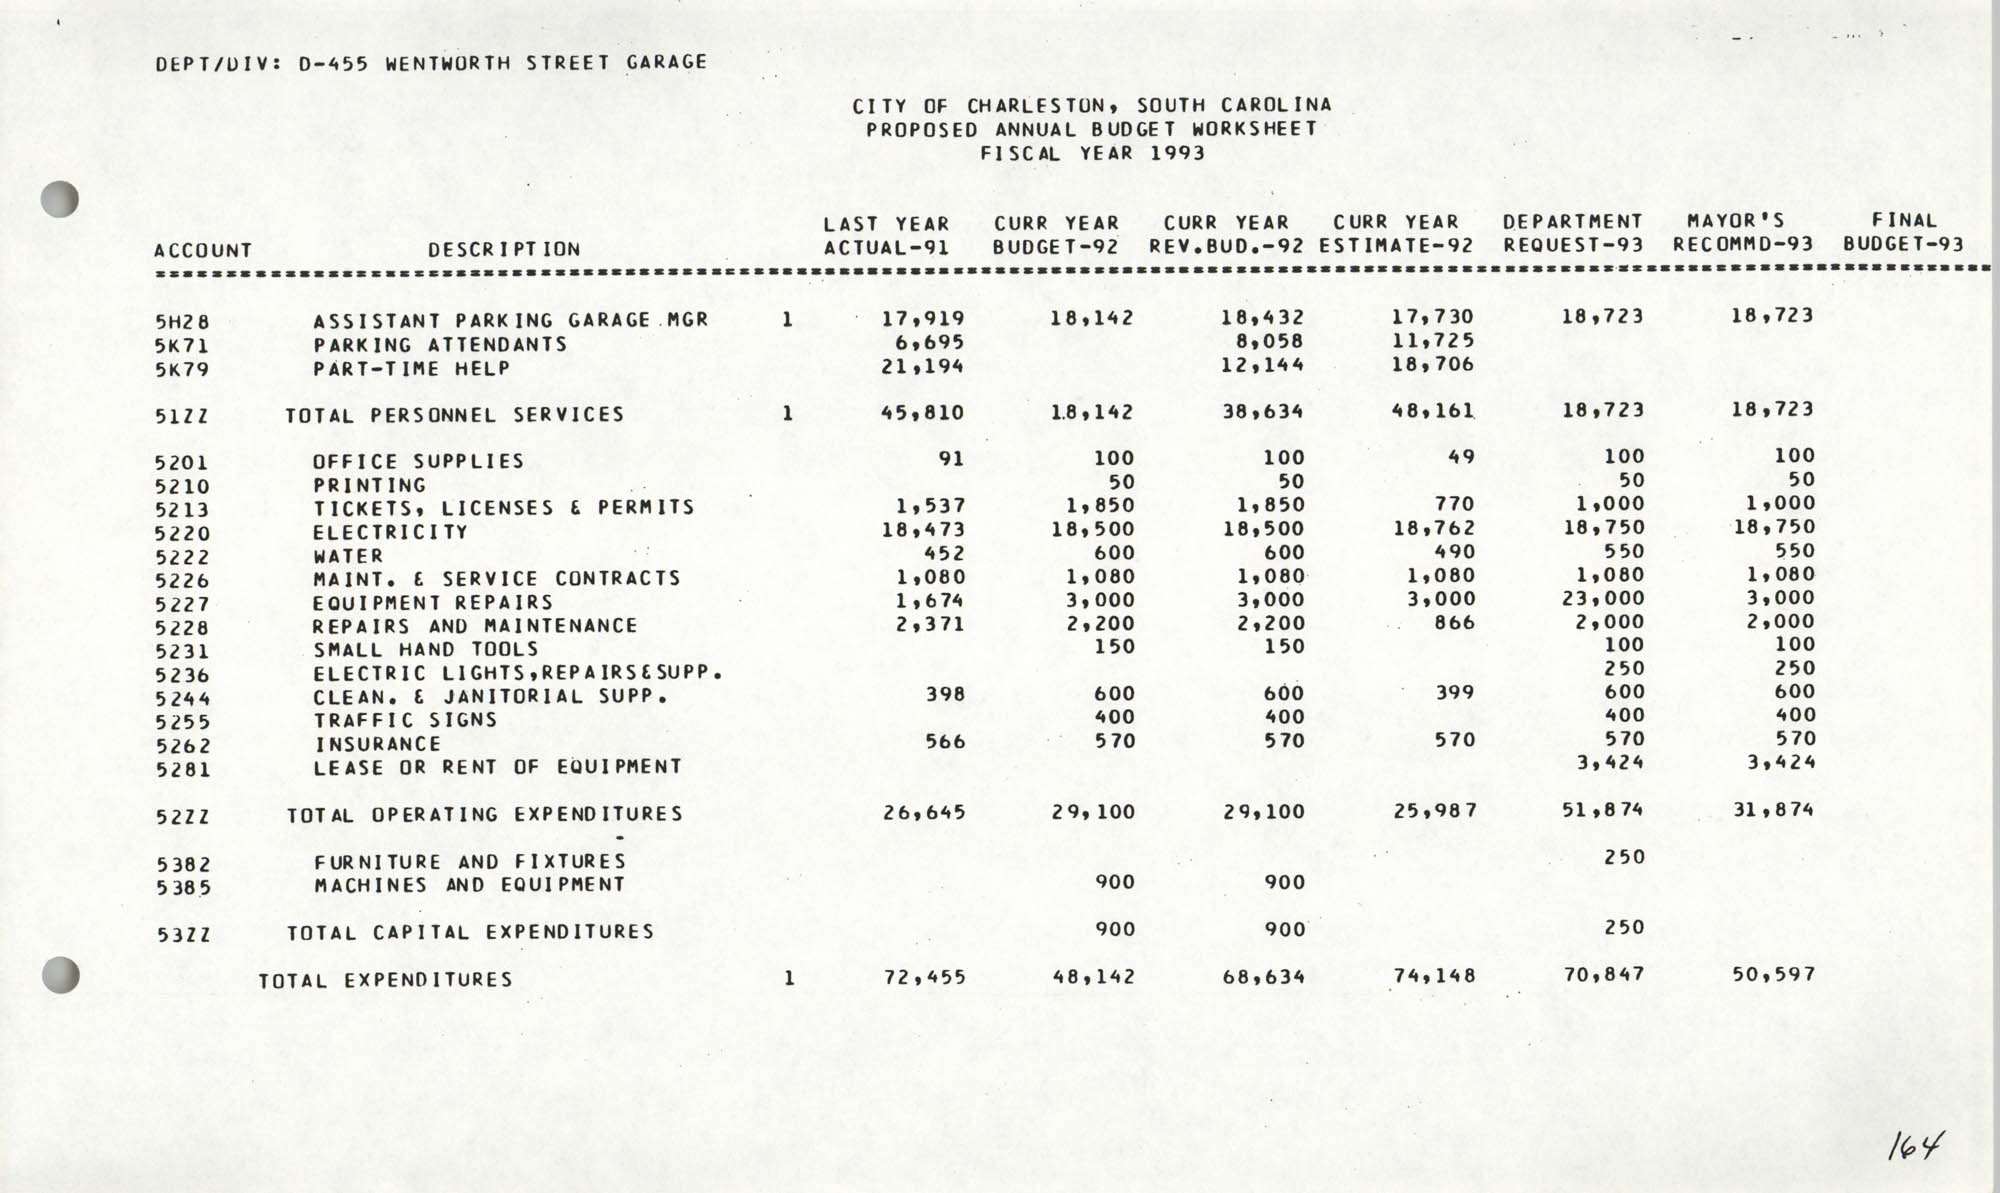 The City Council of Charleston, South Carolina, 1993 Budget, Page 164